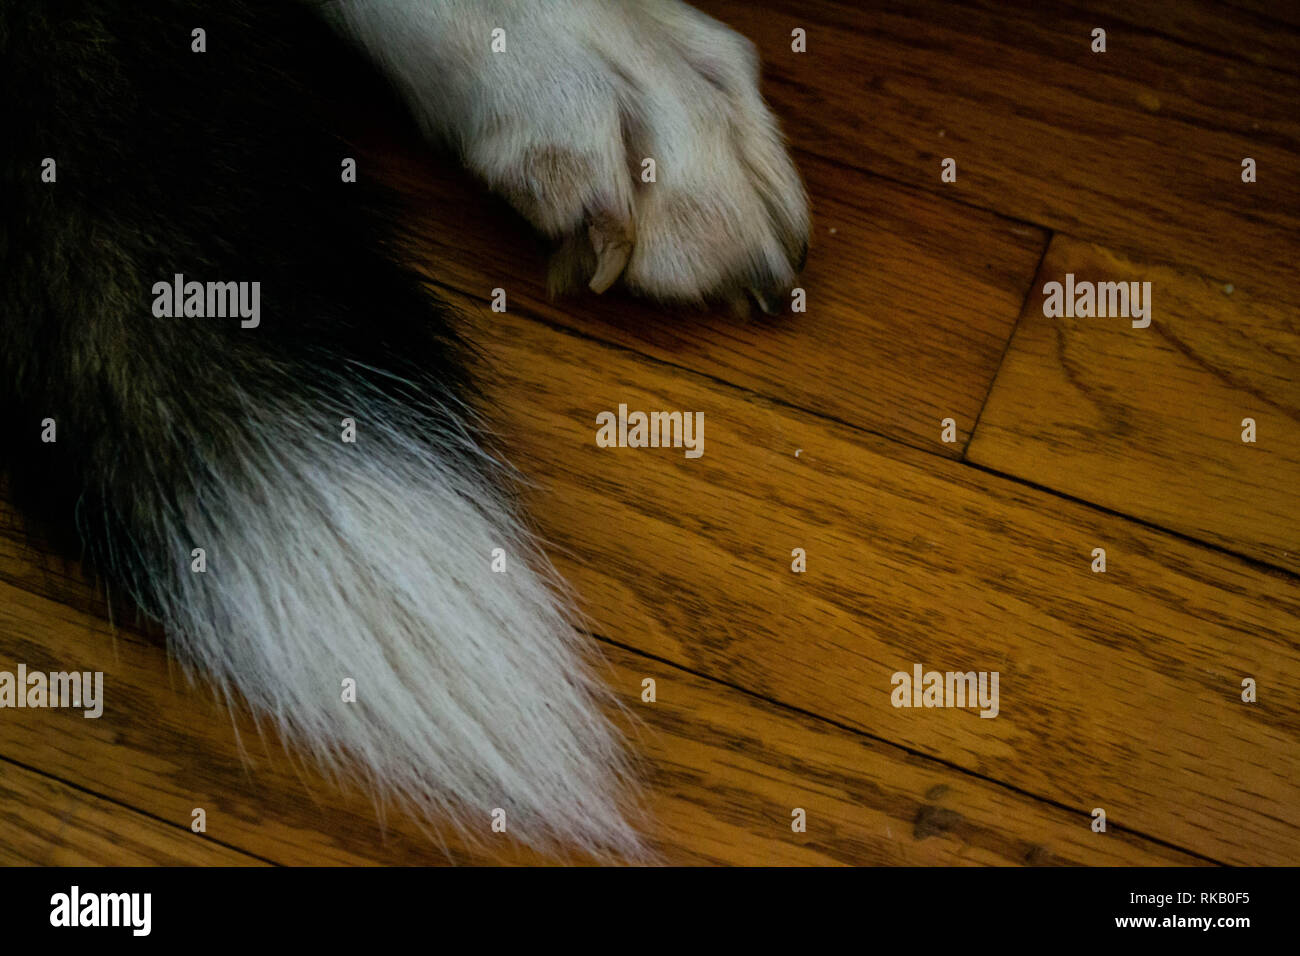 Close up of dog paw and tail on hardwood floor - Stock Image